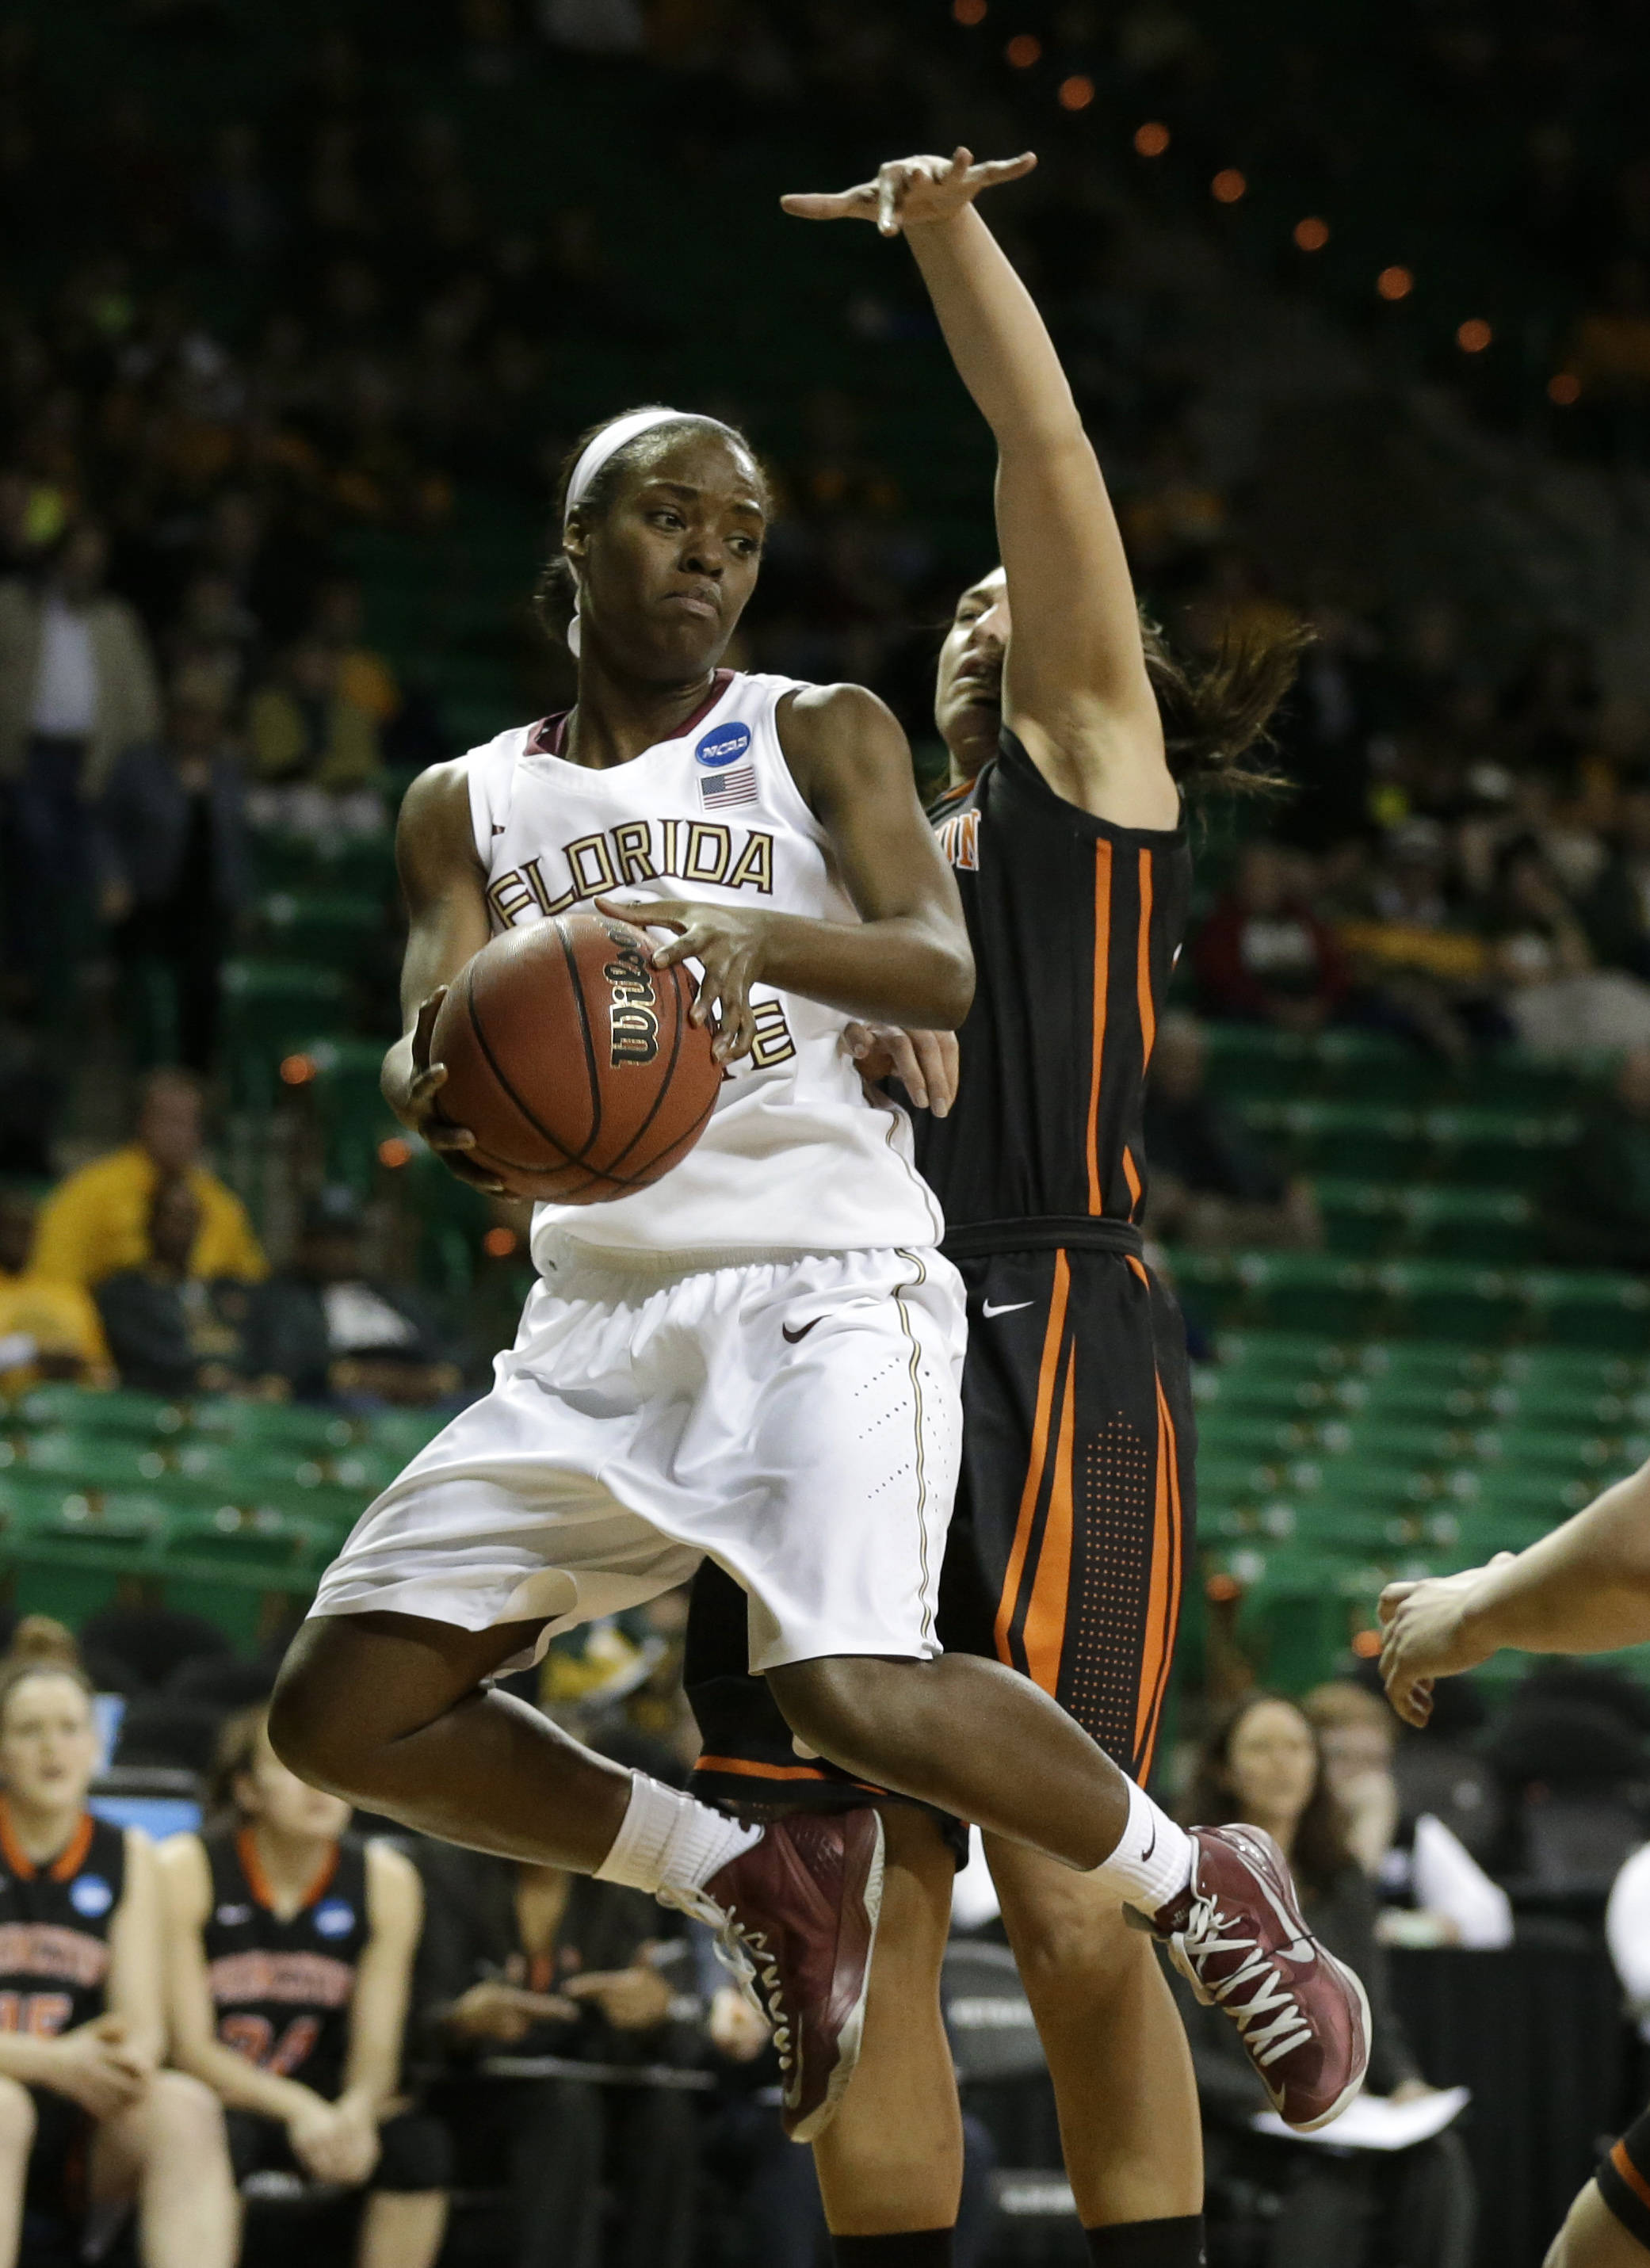 Florida State guard Morgan Jones, left, prepares to pass the ball beneath the basket as Princeton forward Kristen Helmstetter, right, defends. (AP Photo/Tony Gutierrez)